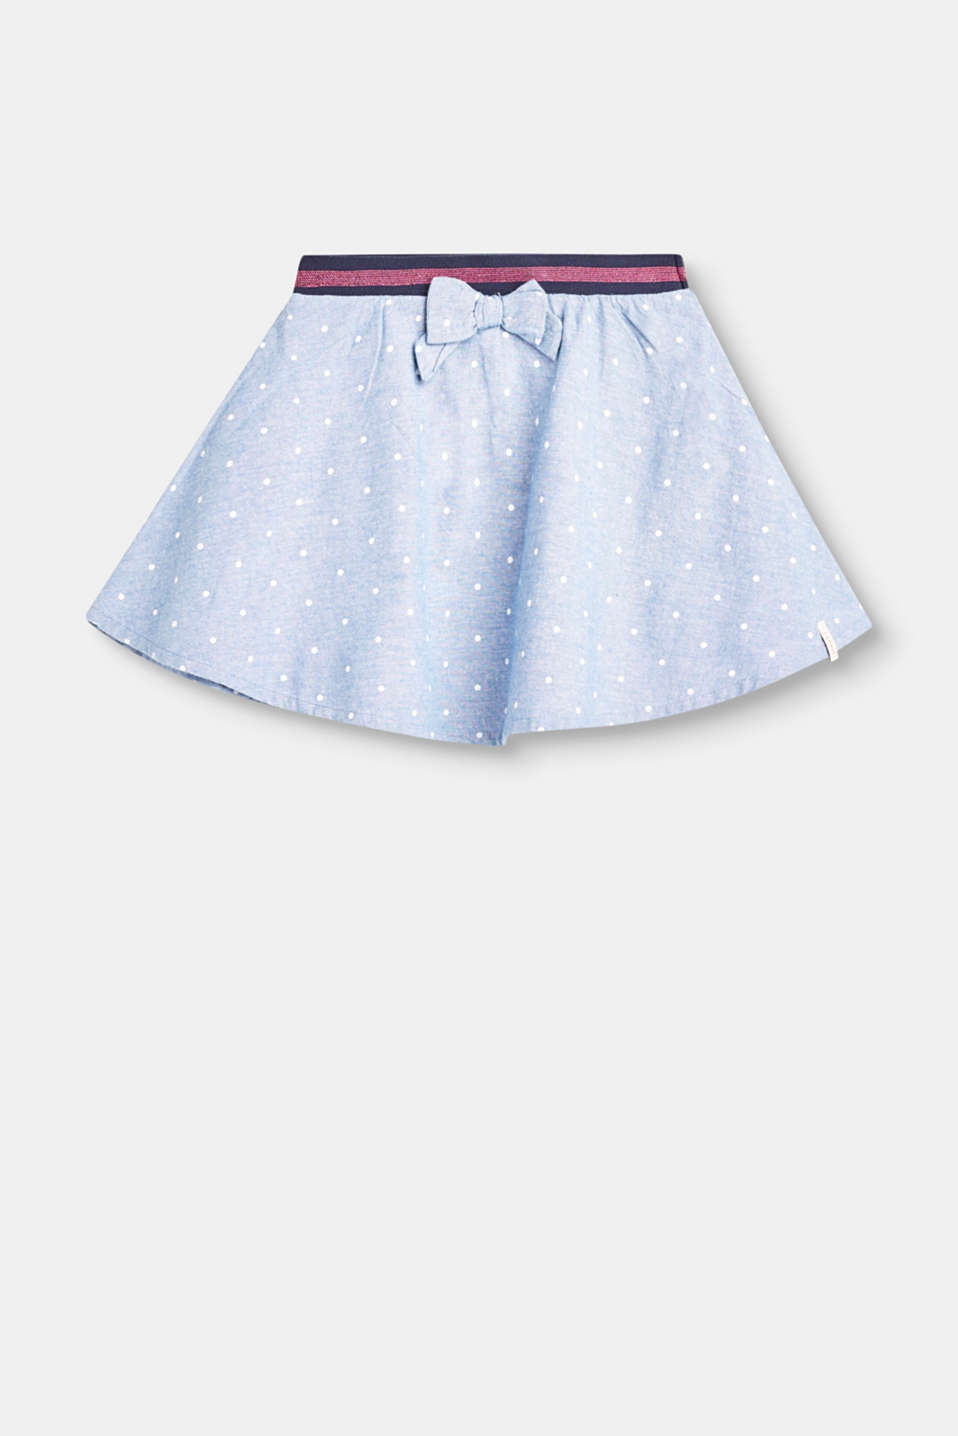 This flared chambray skirt with a polka dot print gets little girls hearts racing before you know it.